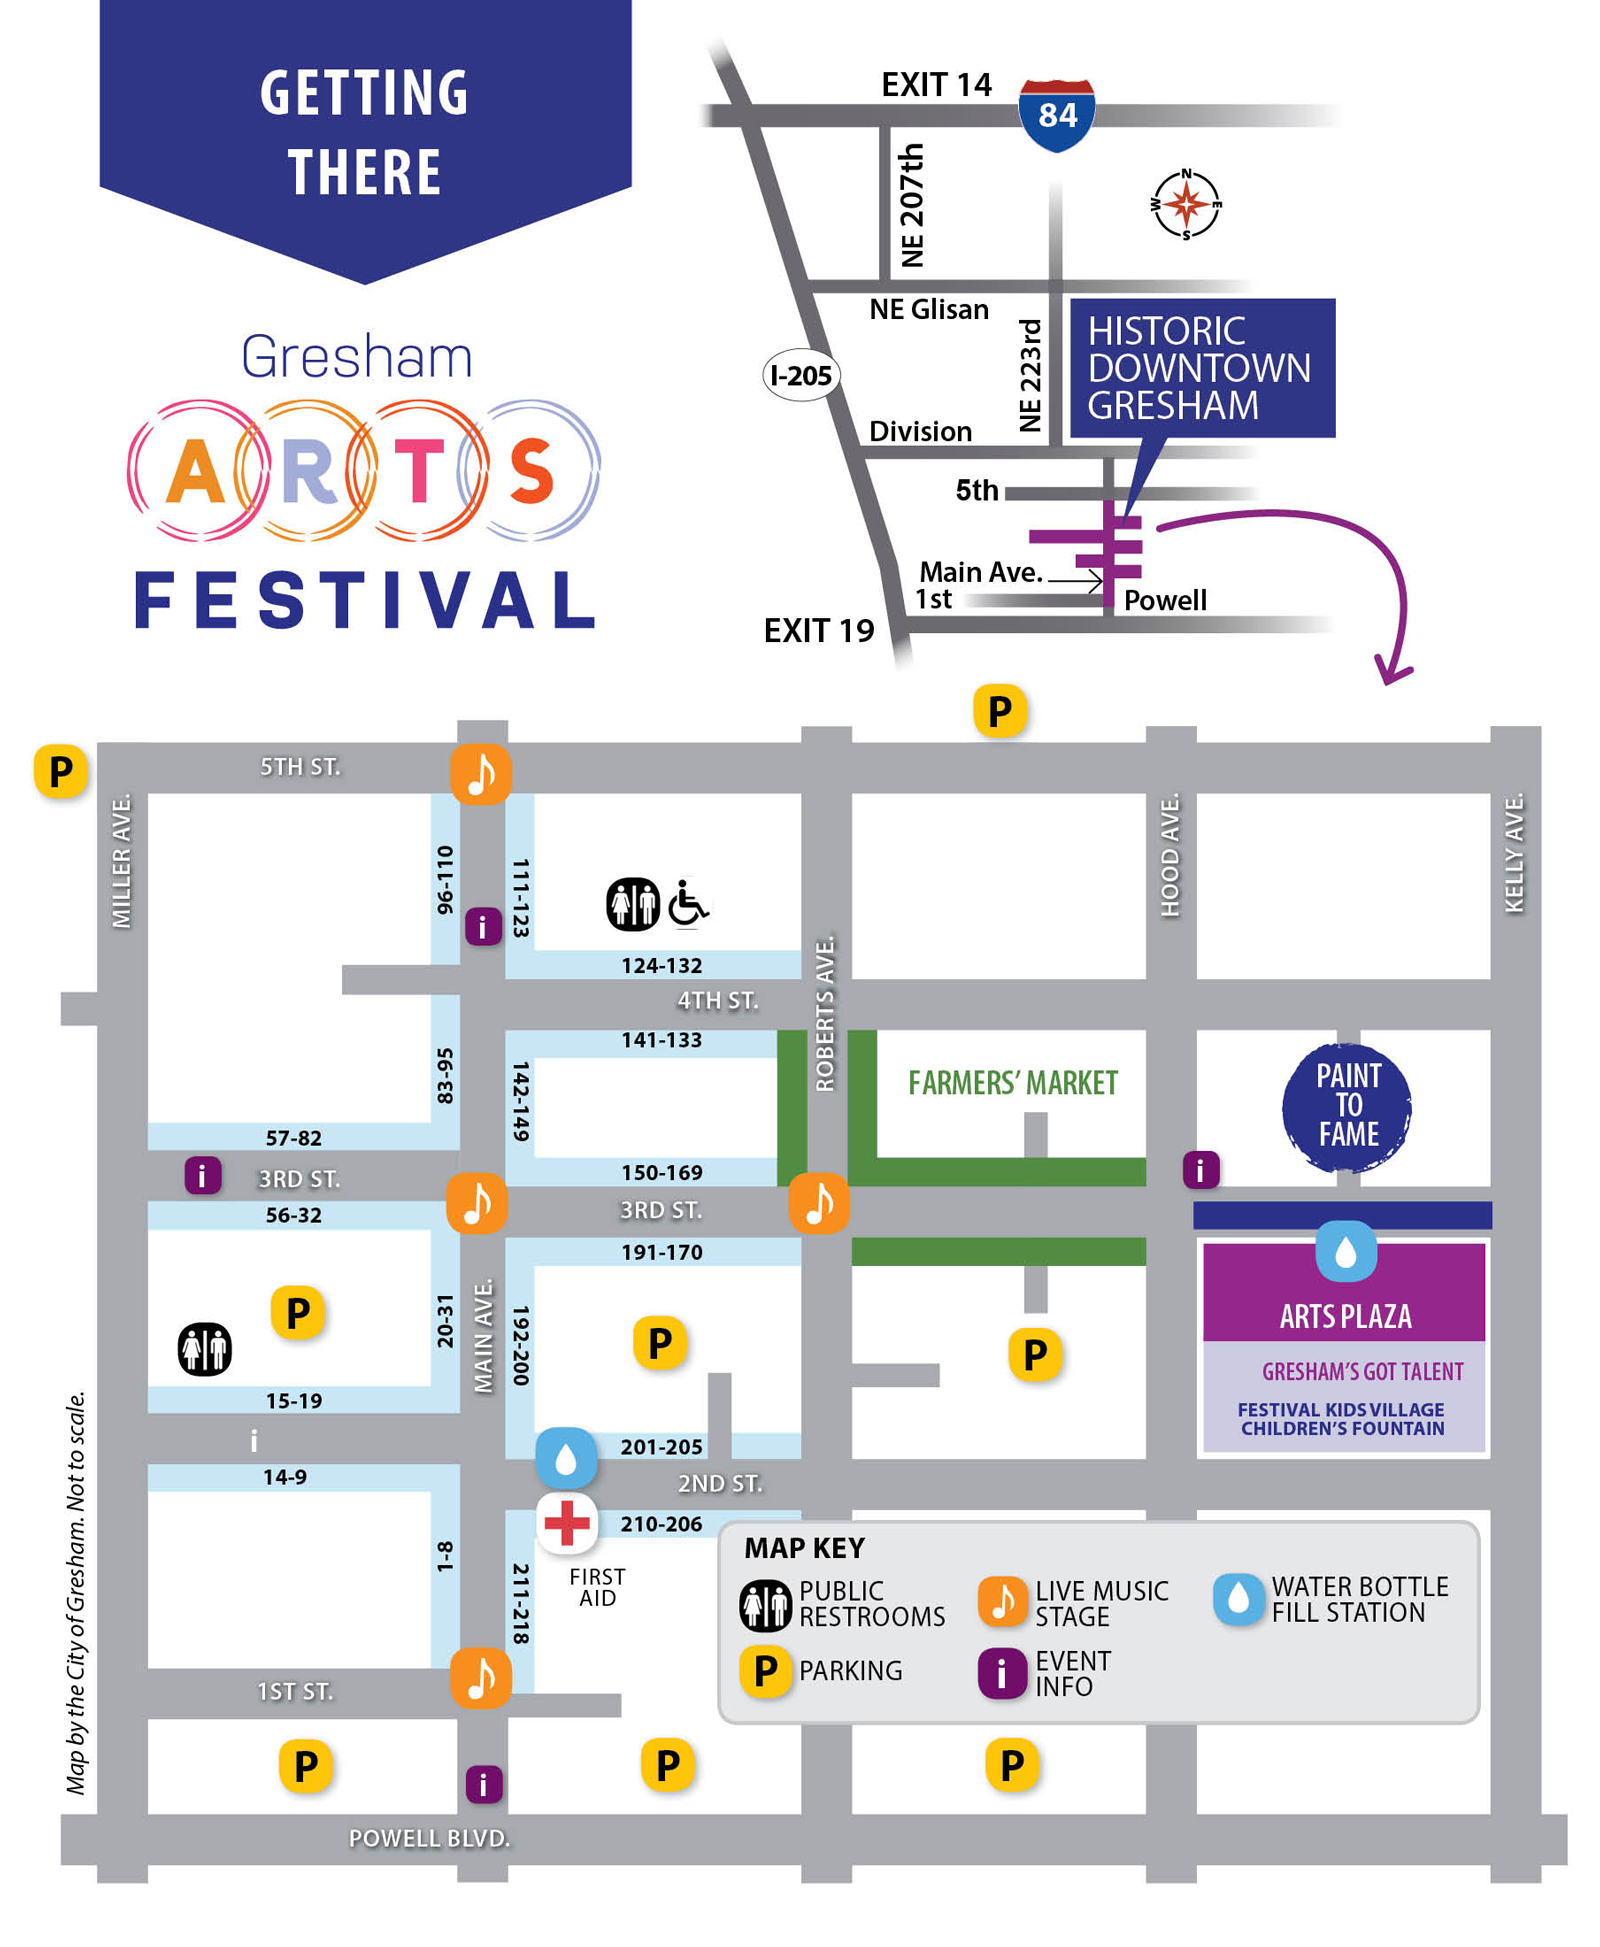 Gresham Arts Festival Map 2018